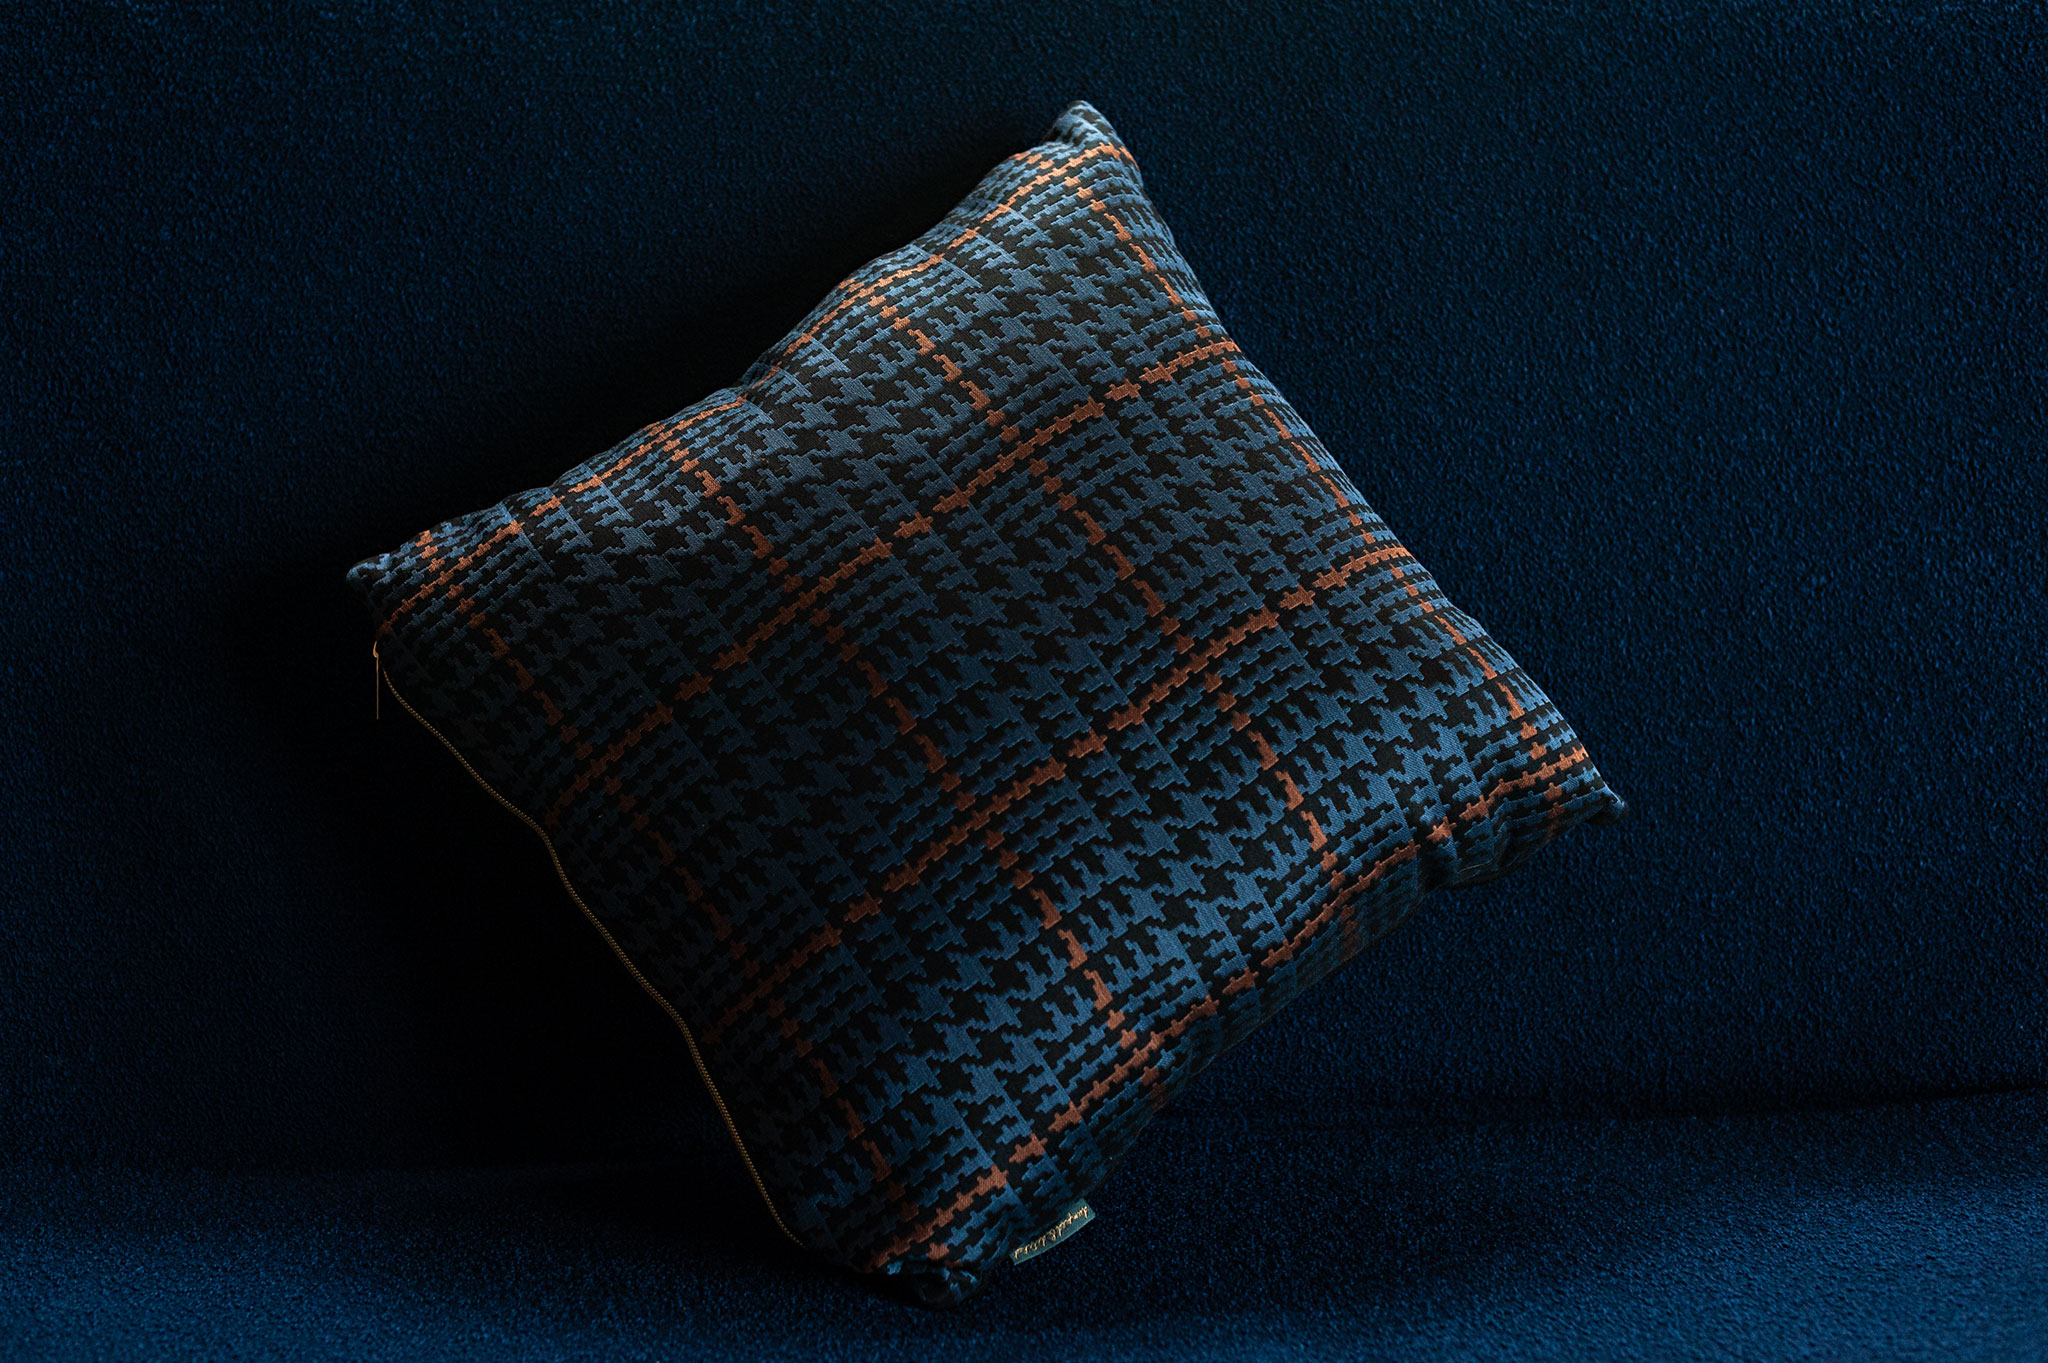 Paul-Smith-cushion-Blue-frontLR.jpg